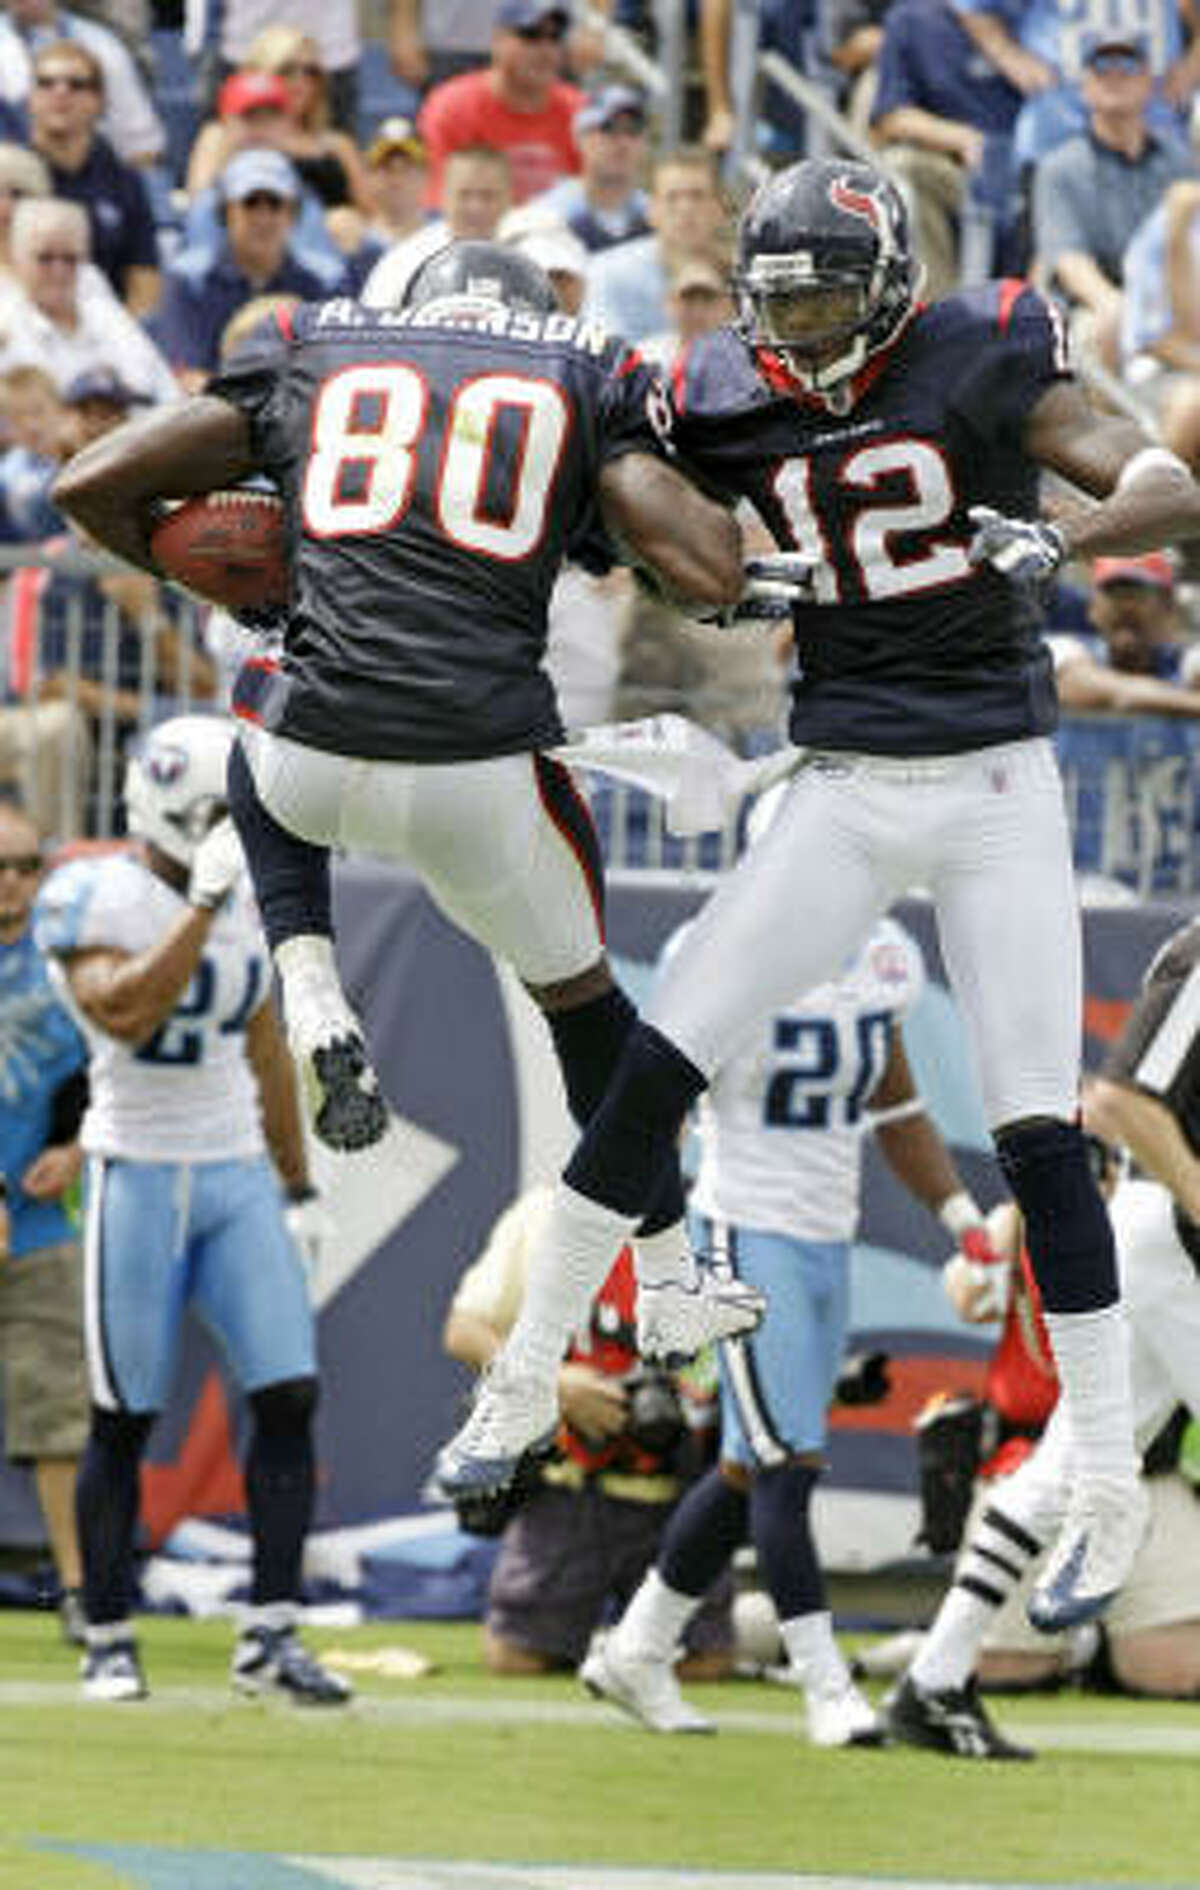 Wide receivers/Tight ends Andre Johnson (10 catches for 149 yards and 2 touchdowns) was the star, but Jacoby Jones made his two catches count for 73 yards and a touchdown. Owen Daniels had six catches and a touchdown. Joel Dreessen averaged 10.3 on three receptions. A